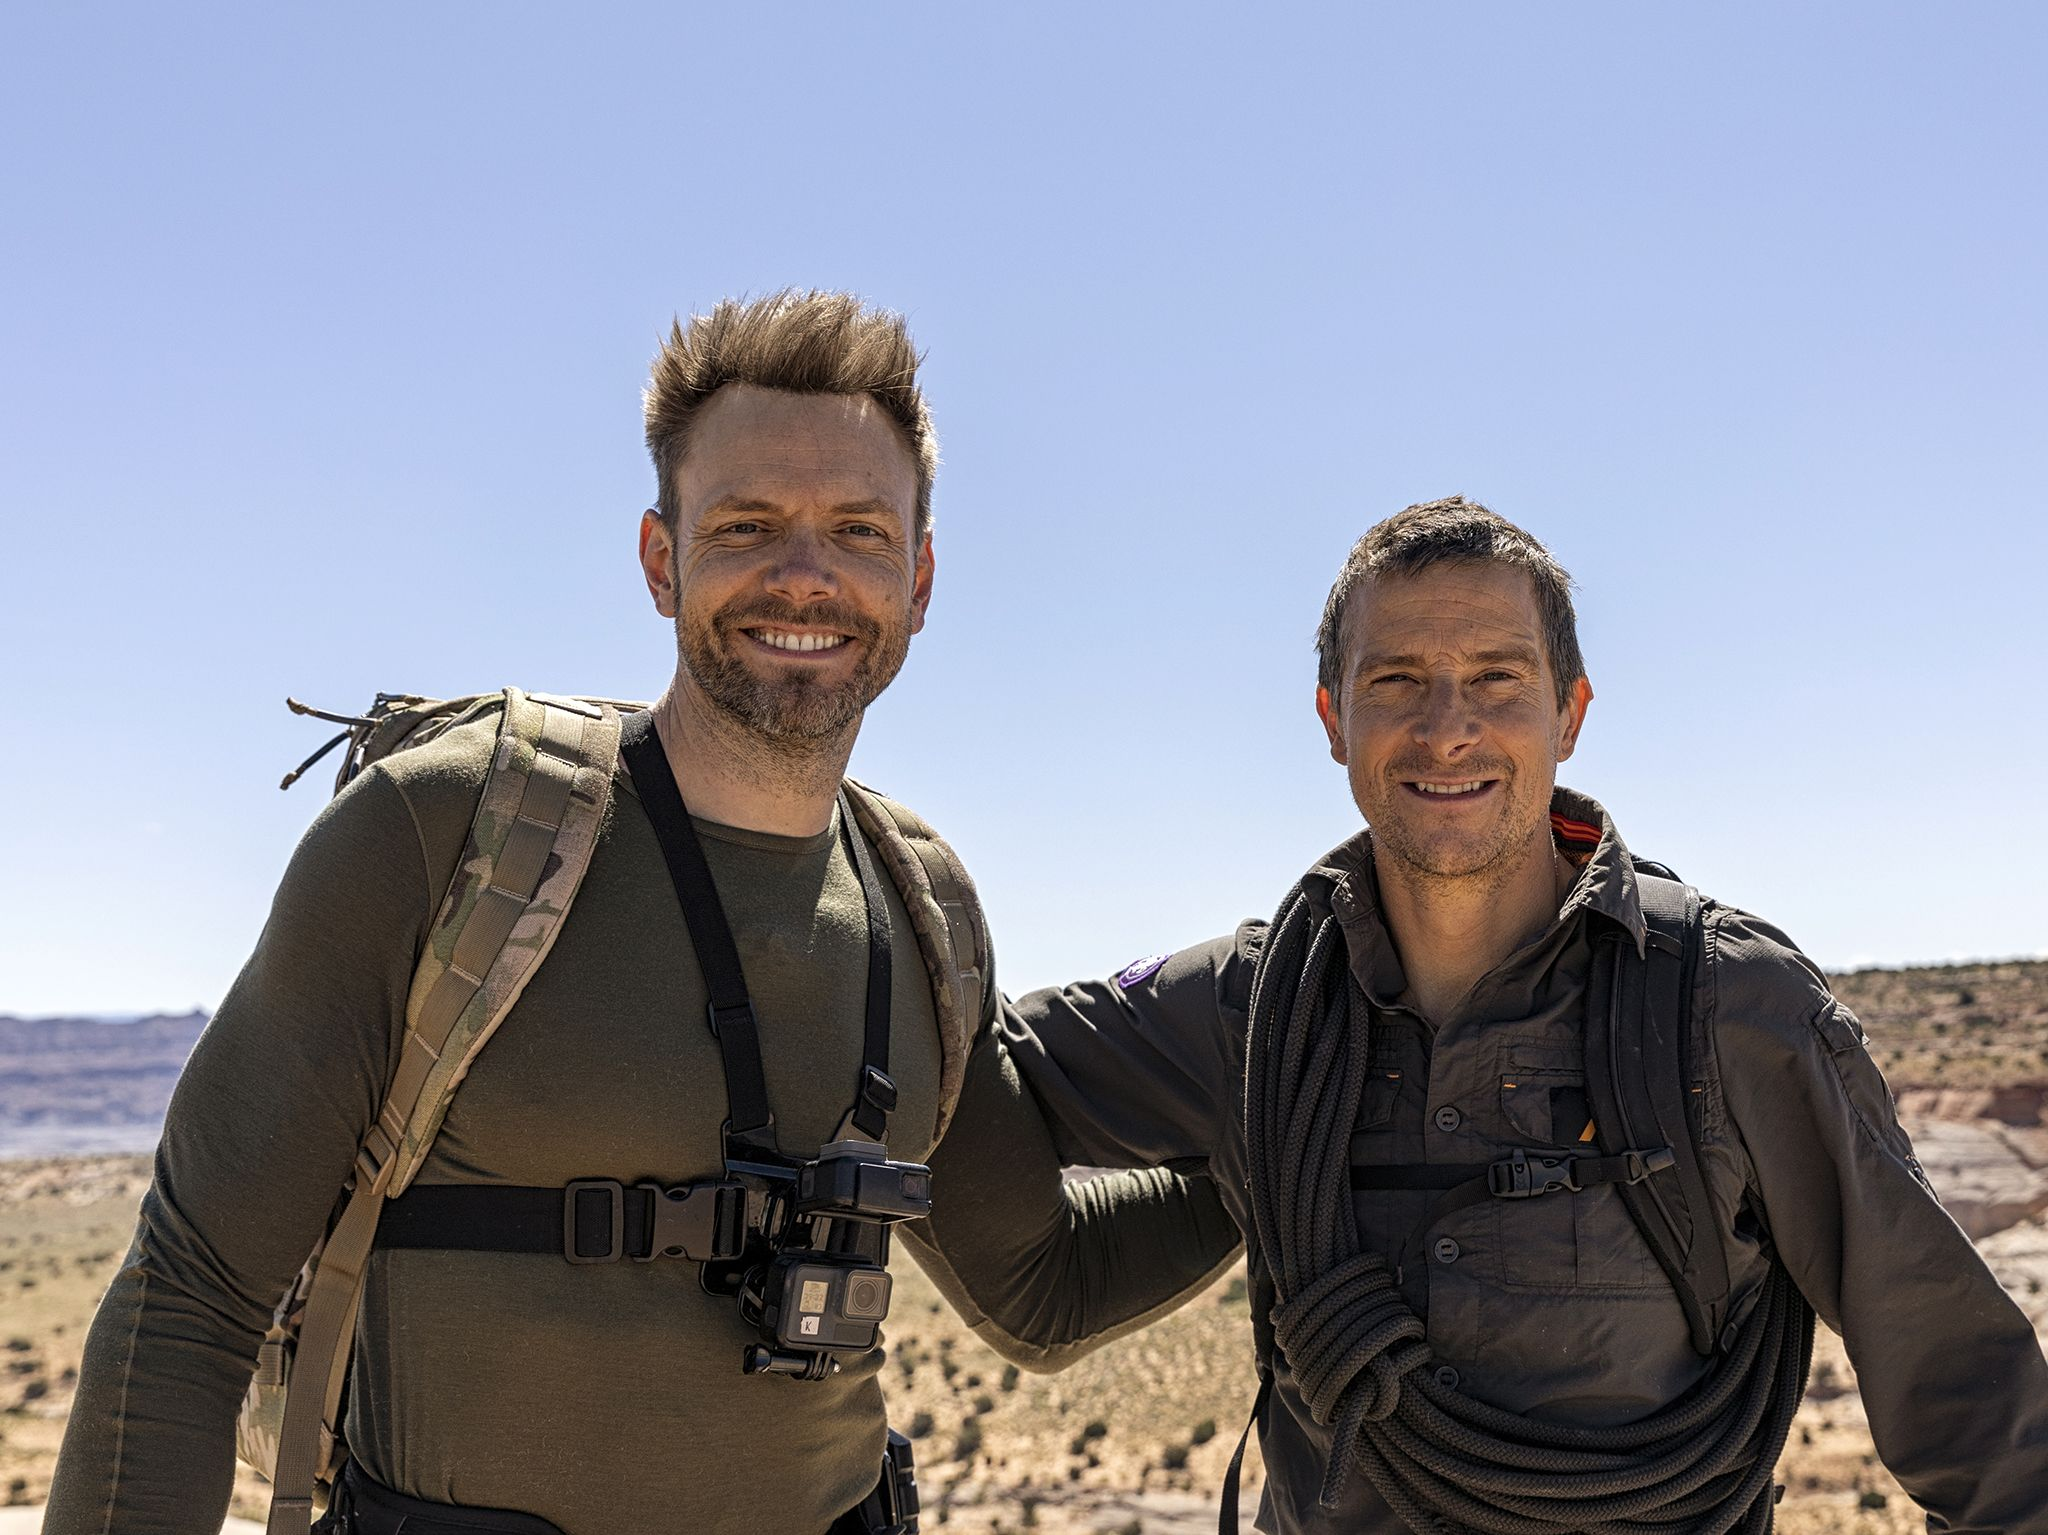 (L to R): Joel McHale and Bear Grylls. This image is from Running Wild with Bear Grylls. [Photo of the day - November 2019]